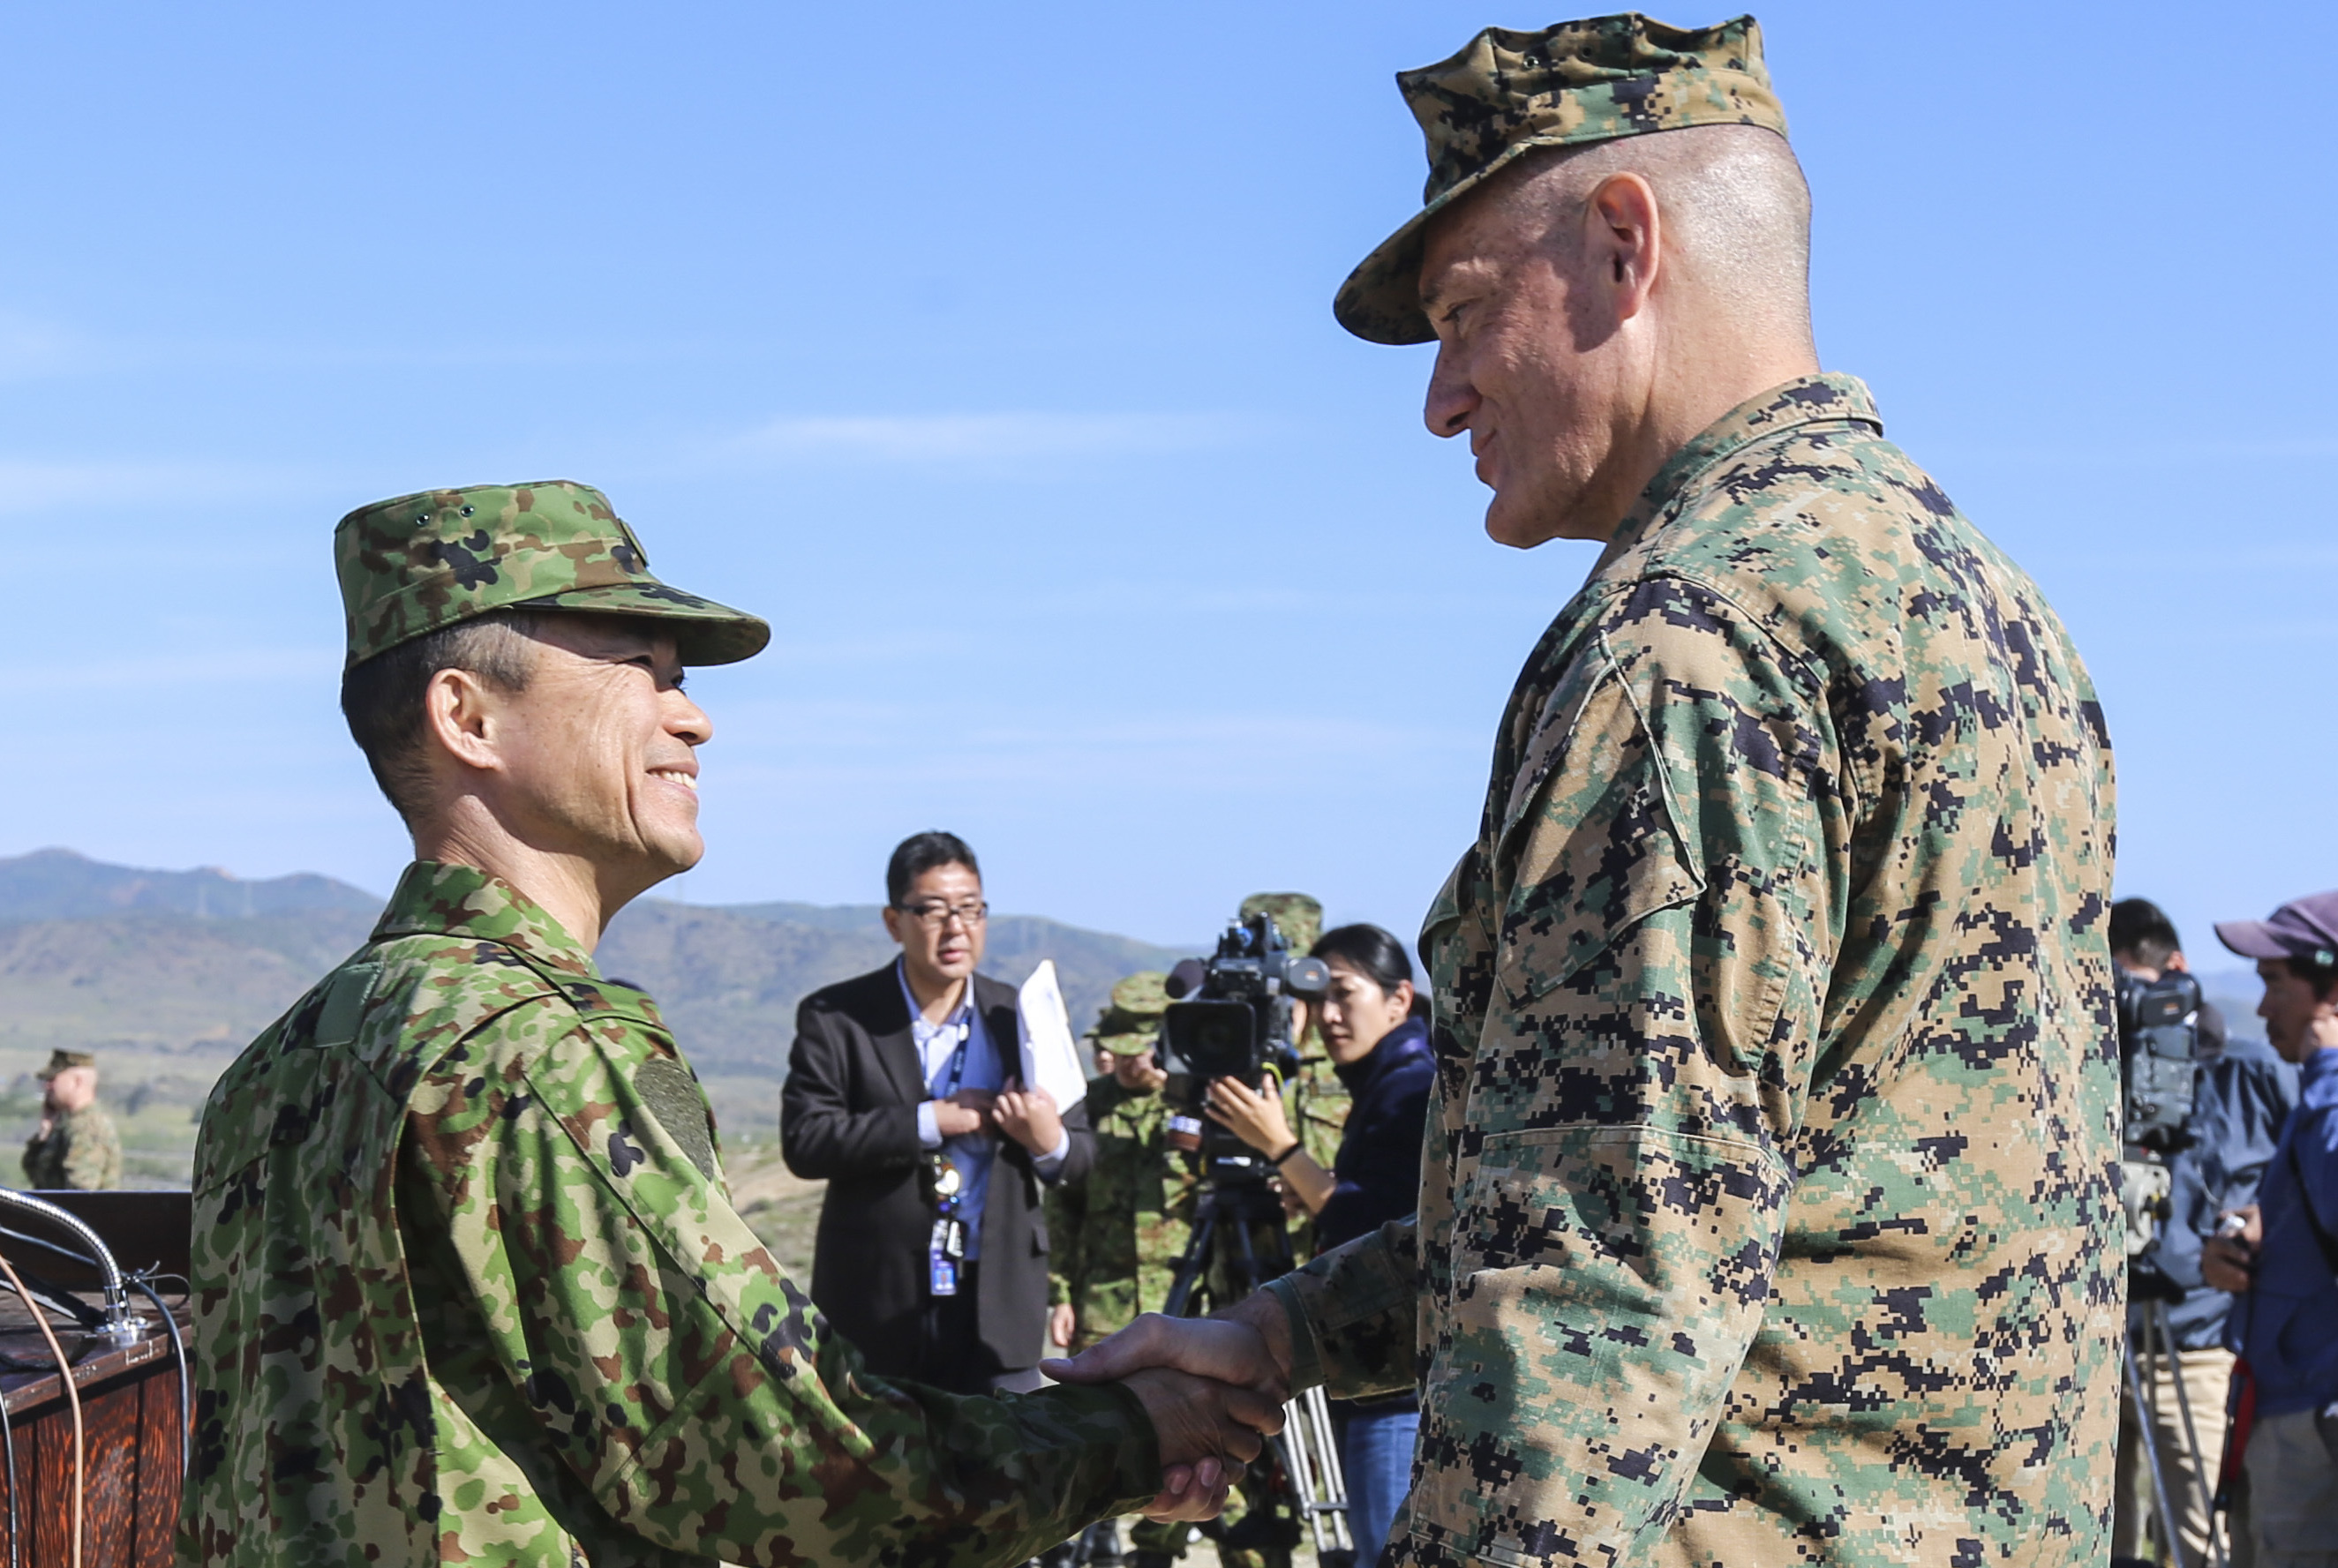 Brig. Gen. David Coffman, deputy commanding general, I Marine Expeditionary Force, shakes hands with Maj. Gen. Shinichi Aoki, deputy chief of staff (operations), Western Army, Japan Ground Self-Defense Force. US Marine Corps Photo